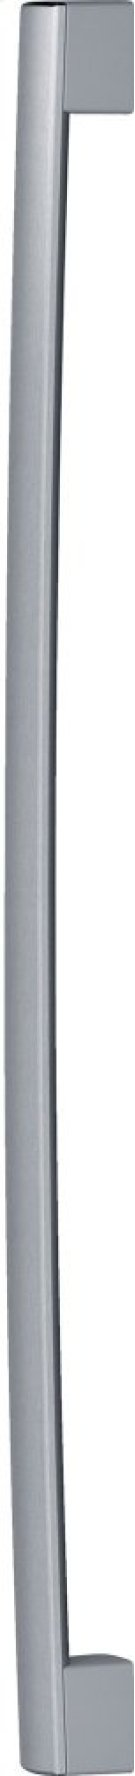 """36"""" Handle for Single Door Refrigeration Product Image"""